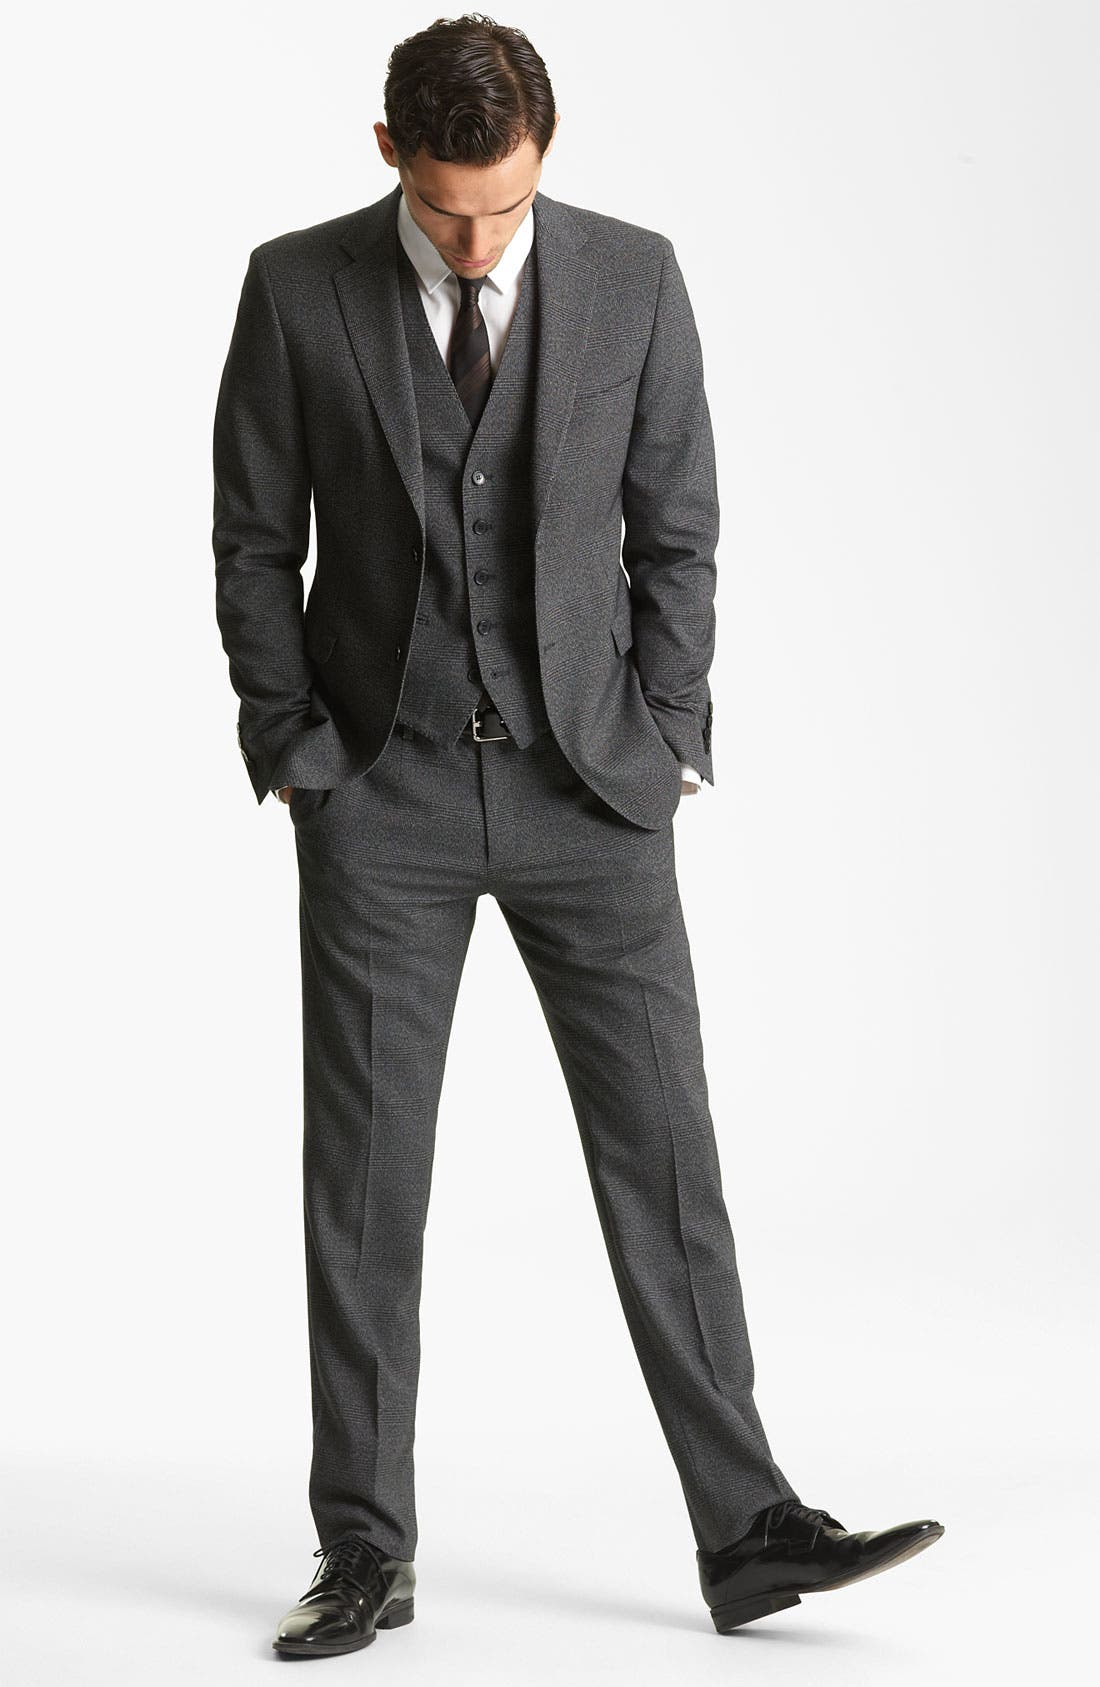 DOLCE&GABBANA,                             Three Piece Suit,                             Alternate thumbnail 6, color,                             021